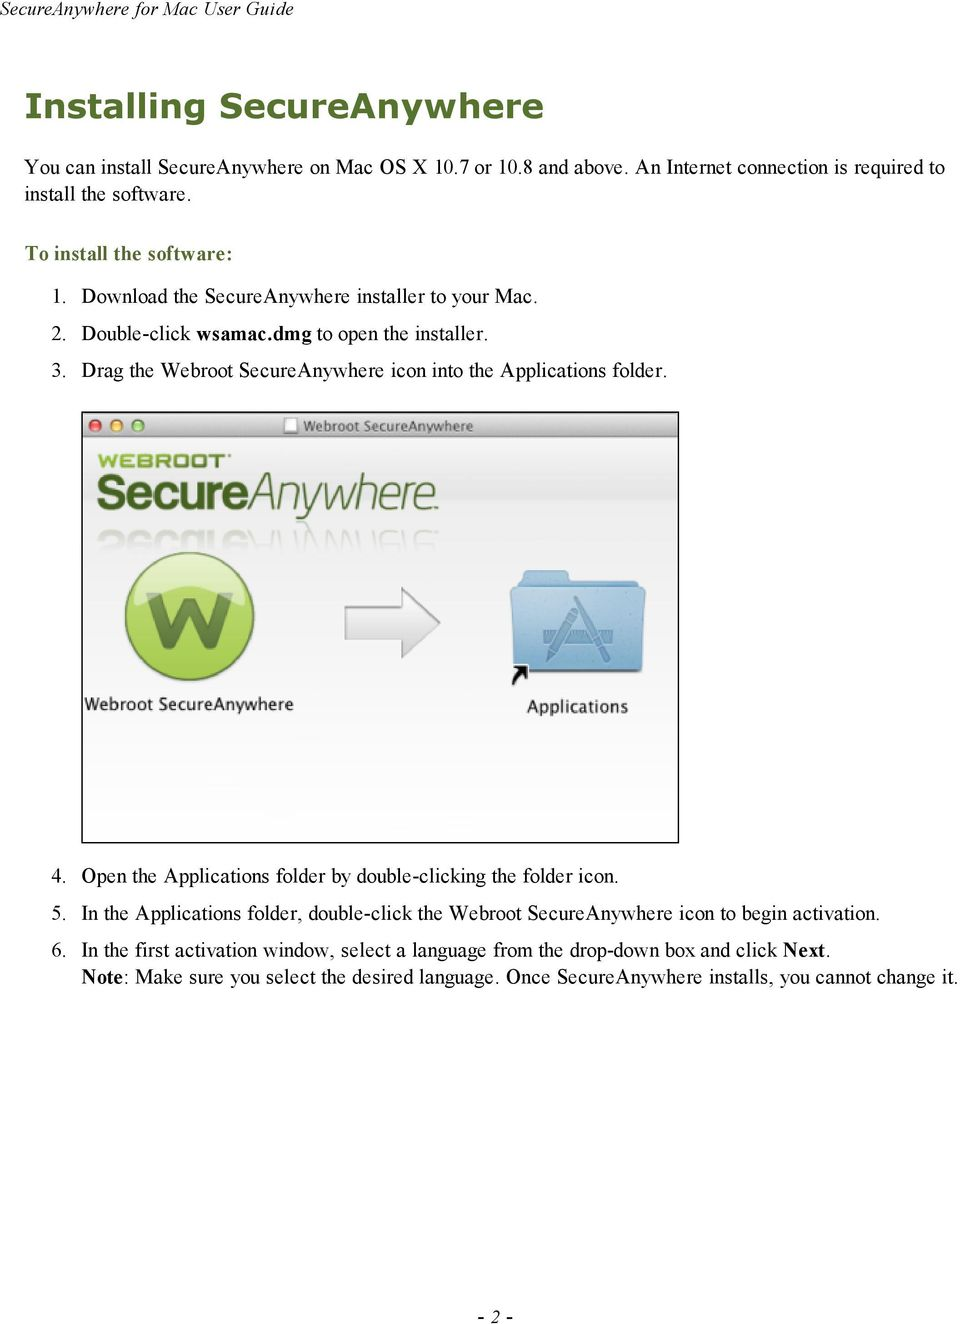 Drag the Webroot SecureAnywhere icon into the Applications folder. 4. Open the Applications folder by double-clicking the folder icon. 5.